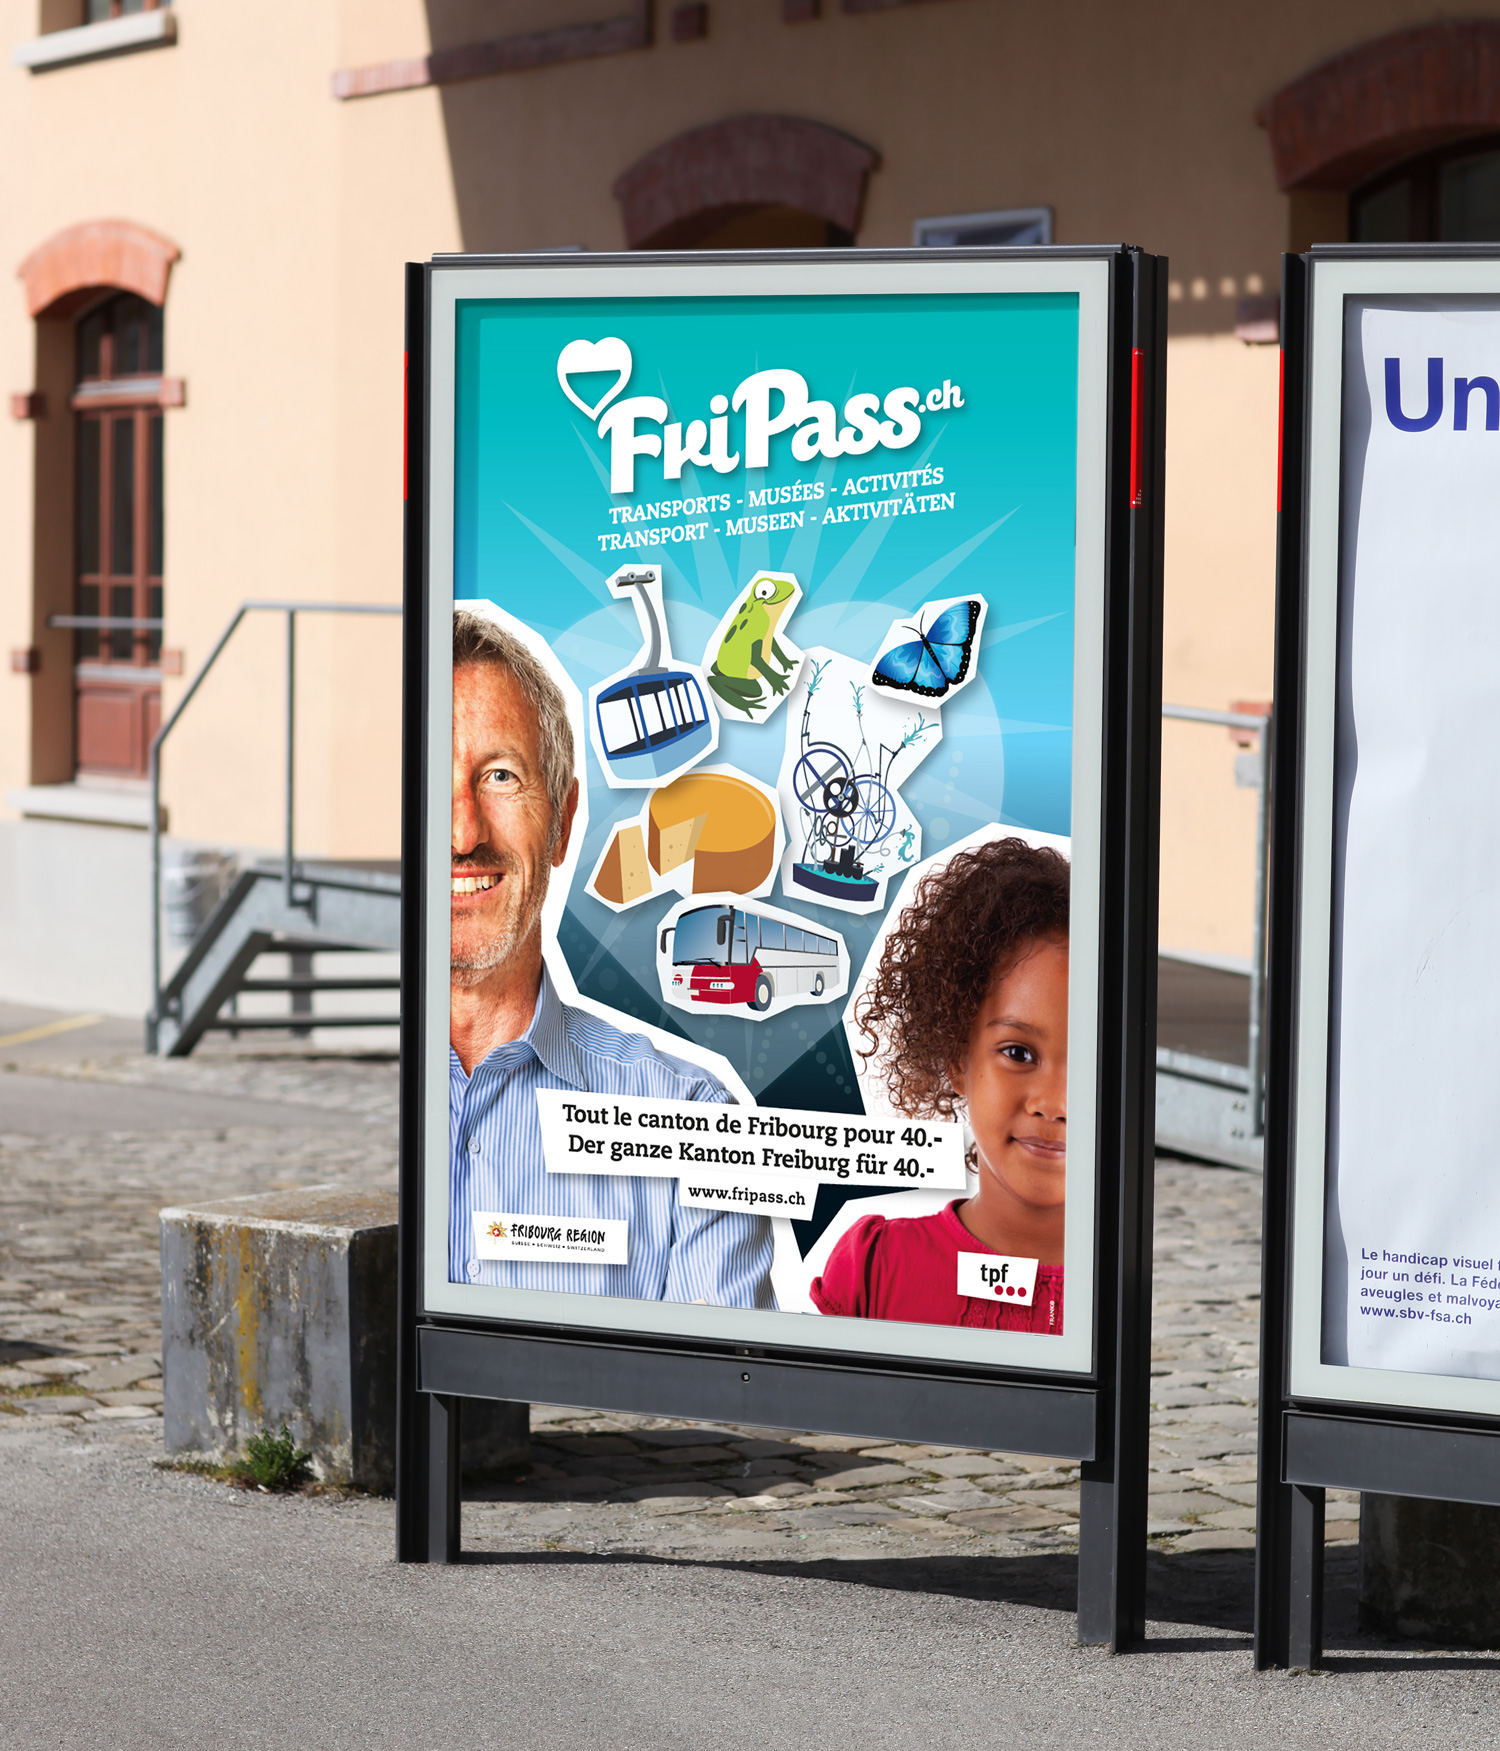 Frank R - Campagne de communication - Fripass - Fribourg